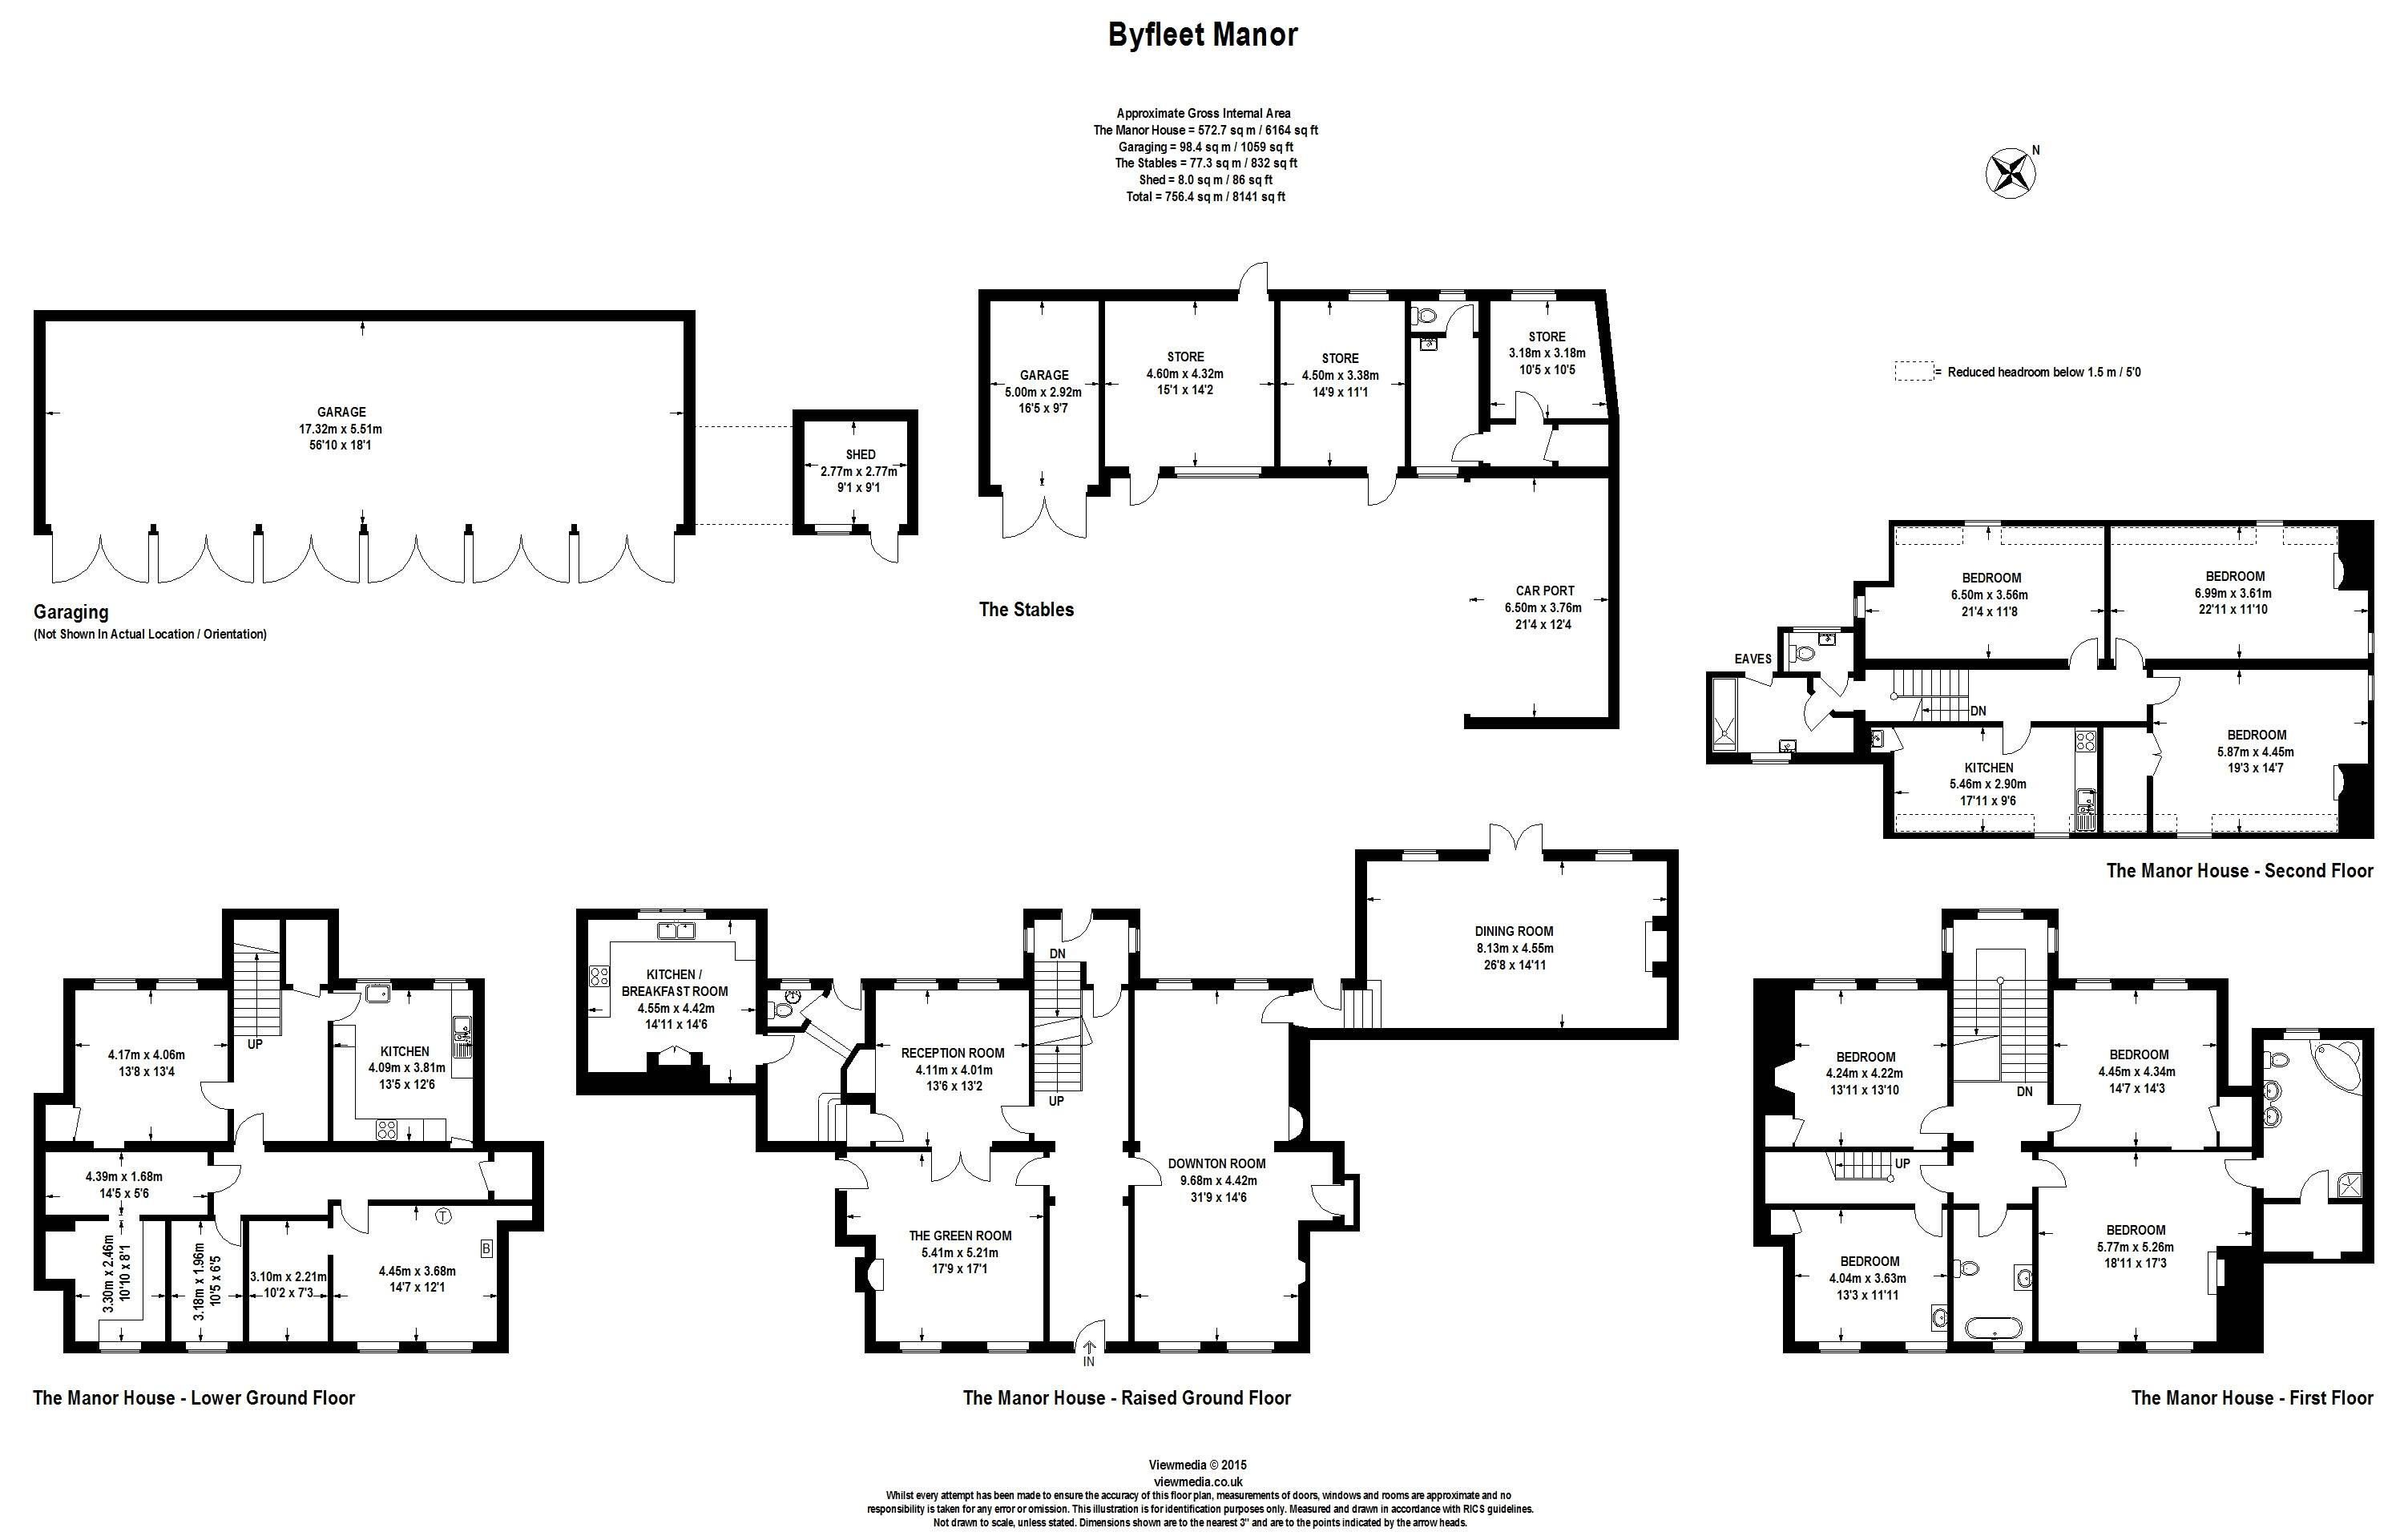 byfleet Manor floor plan